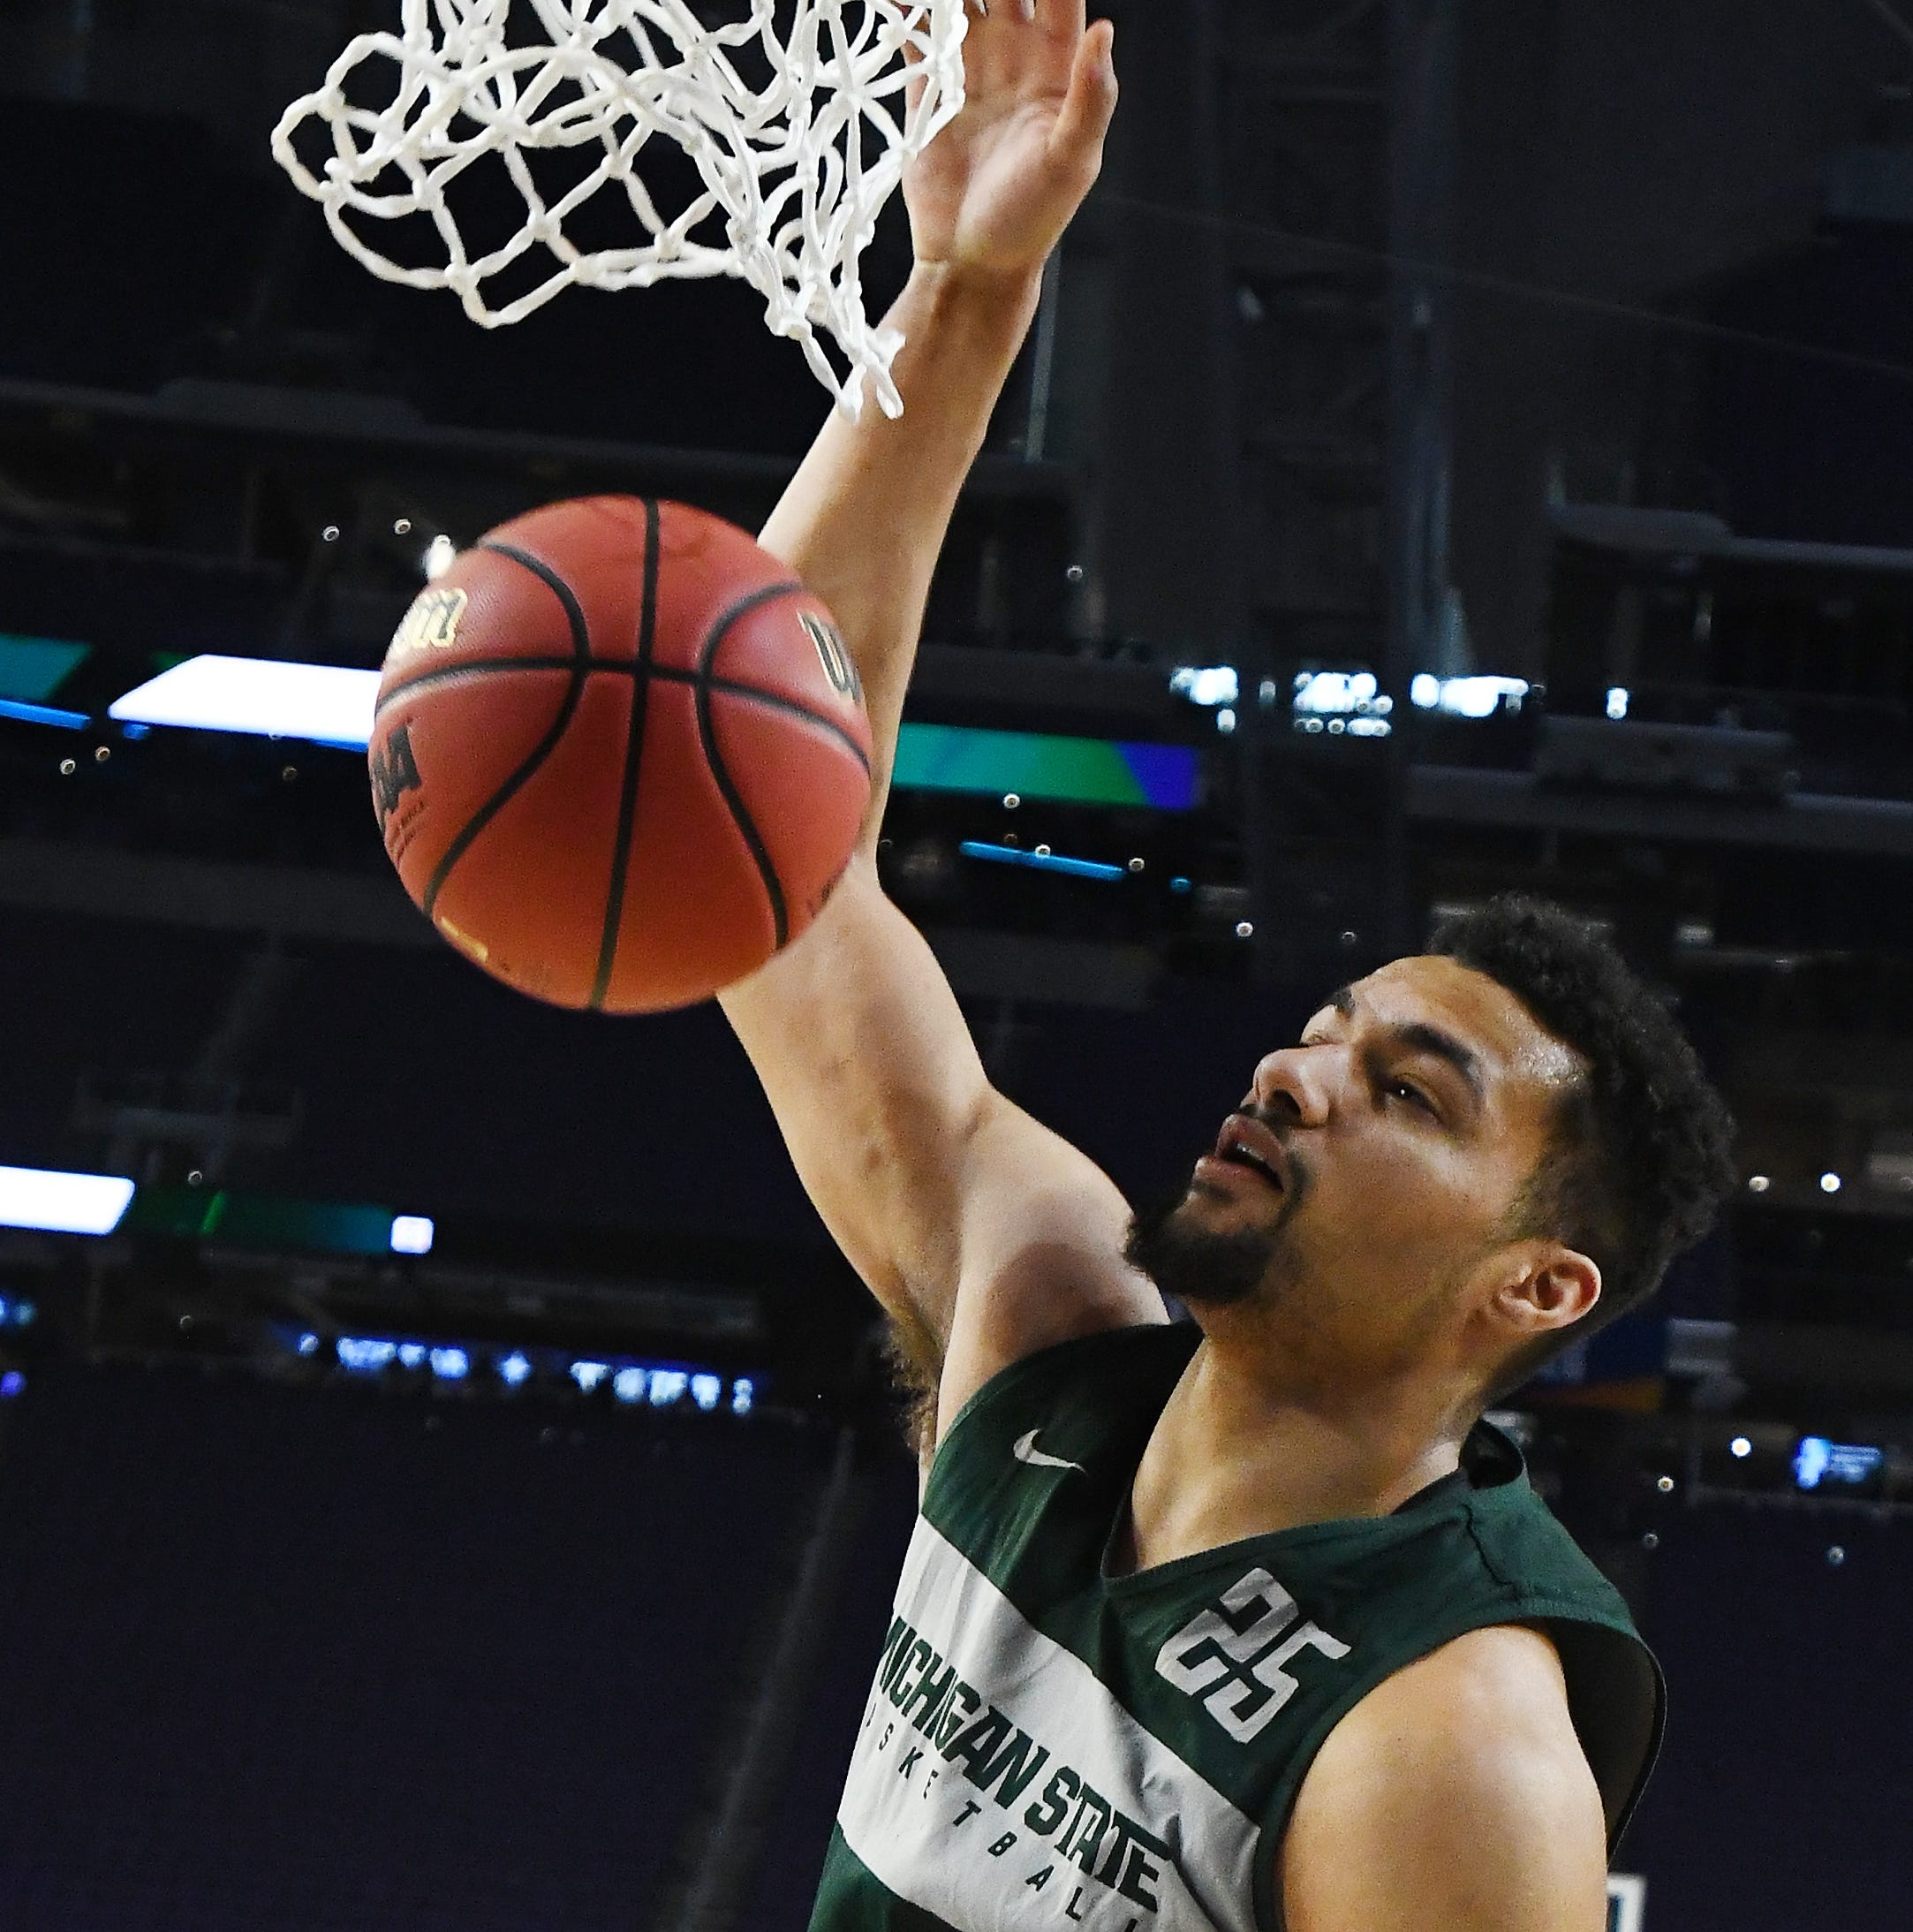 Niyo: Michigan State's Kenny Goins putting faith in 3-point shot thanks to guiding hand